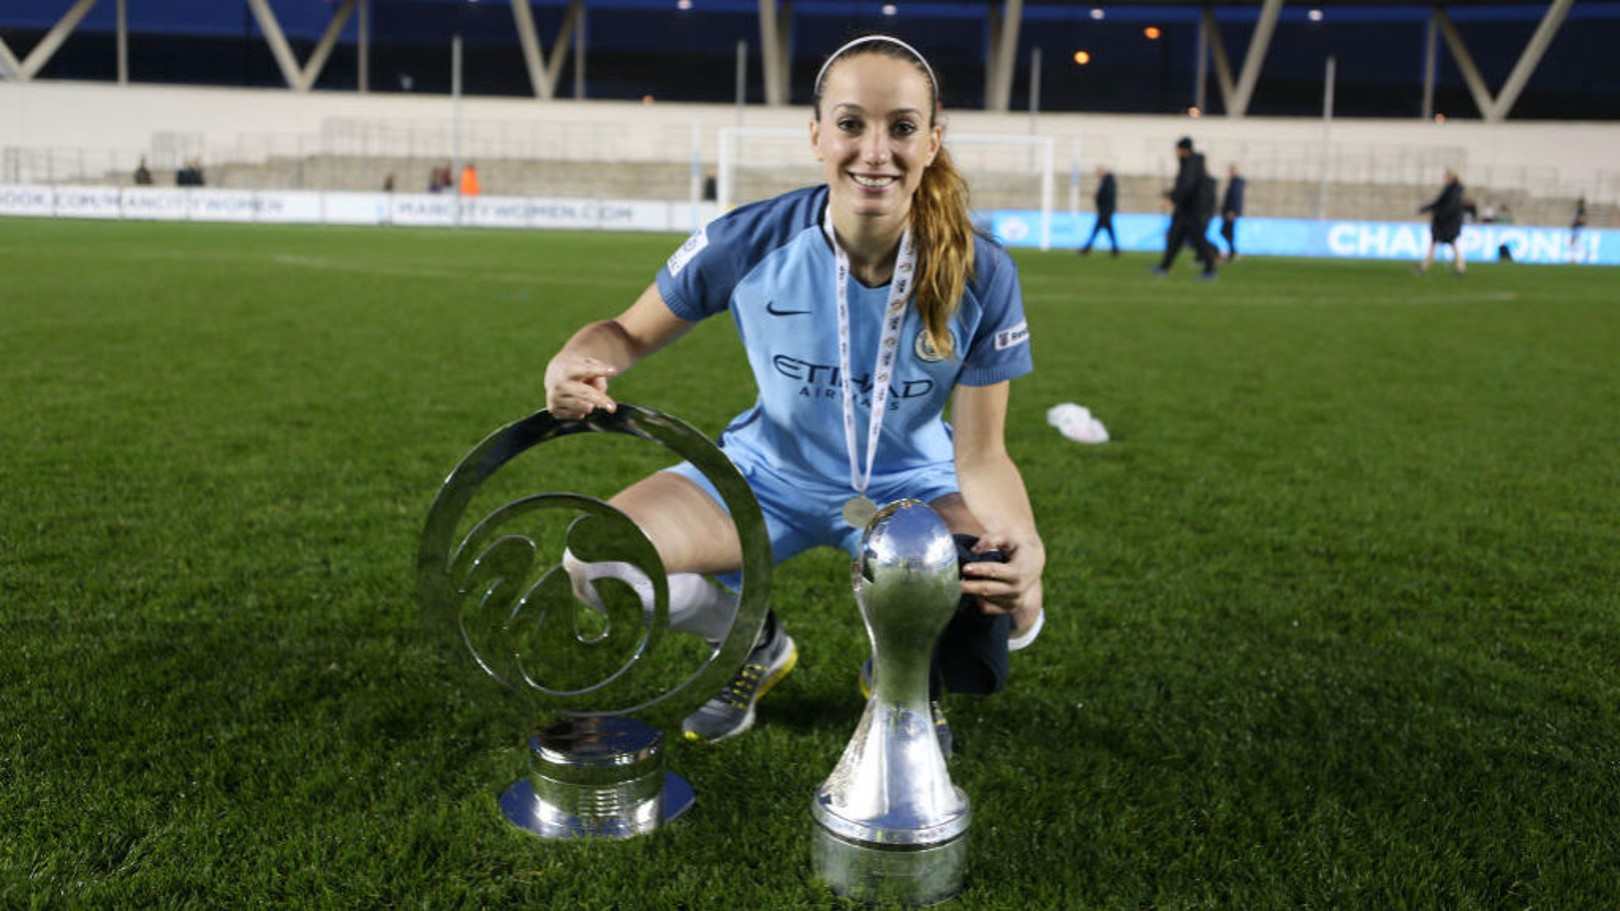 DEPARTING: Kosse Asllani has left Manchester City.